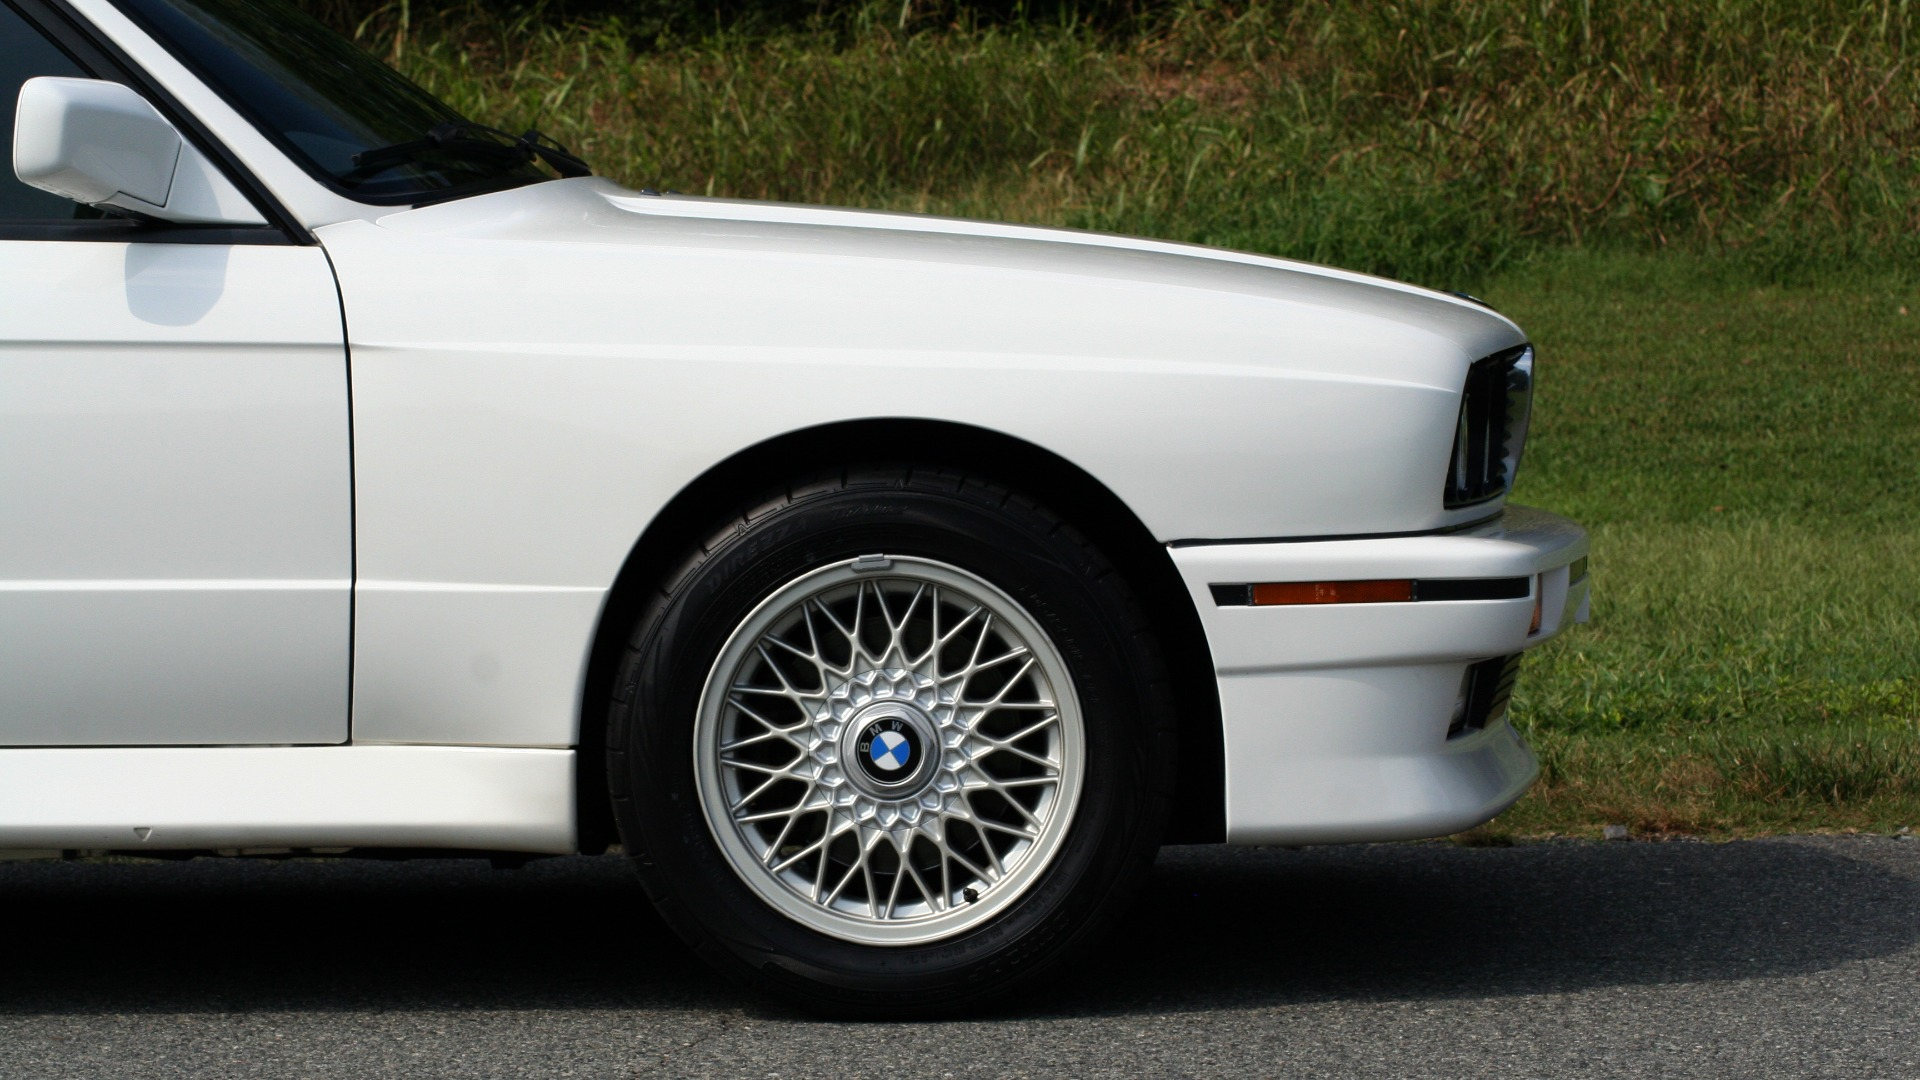 Used 1989 BMW M3 COUPE 2DR / 5-SPEED MAN / LOW MILES / SUPER CLEAN for sale Sold at Formula Imports in Charlotte NC 28227 7